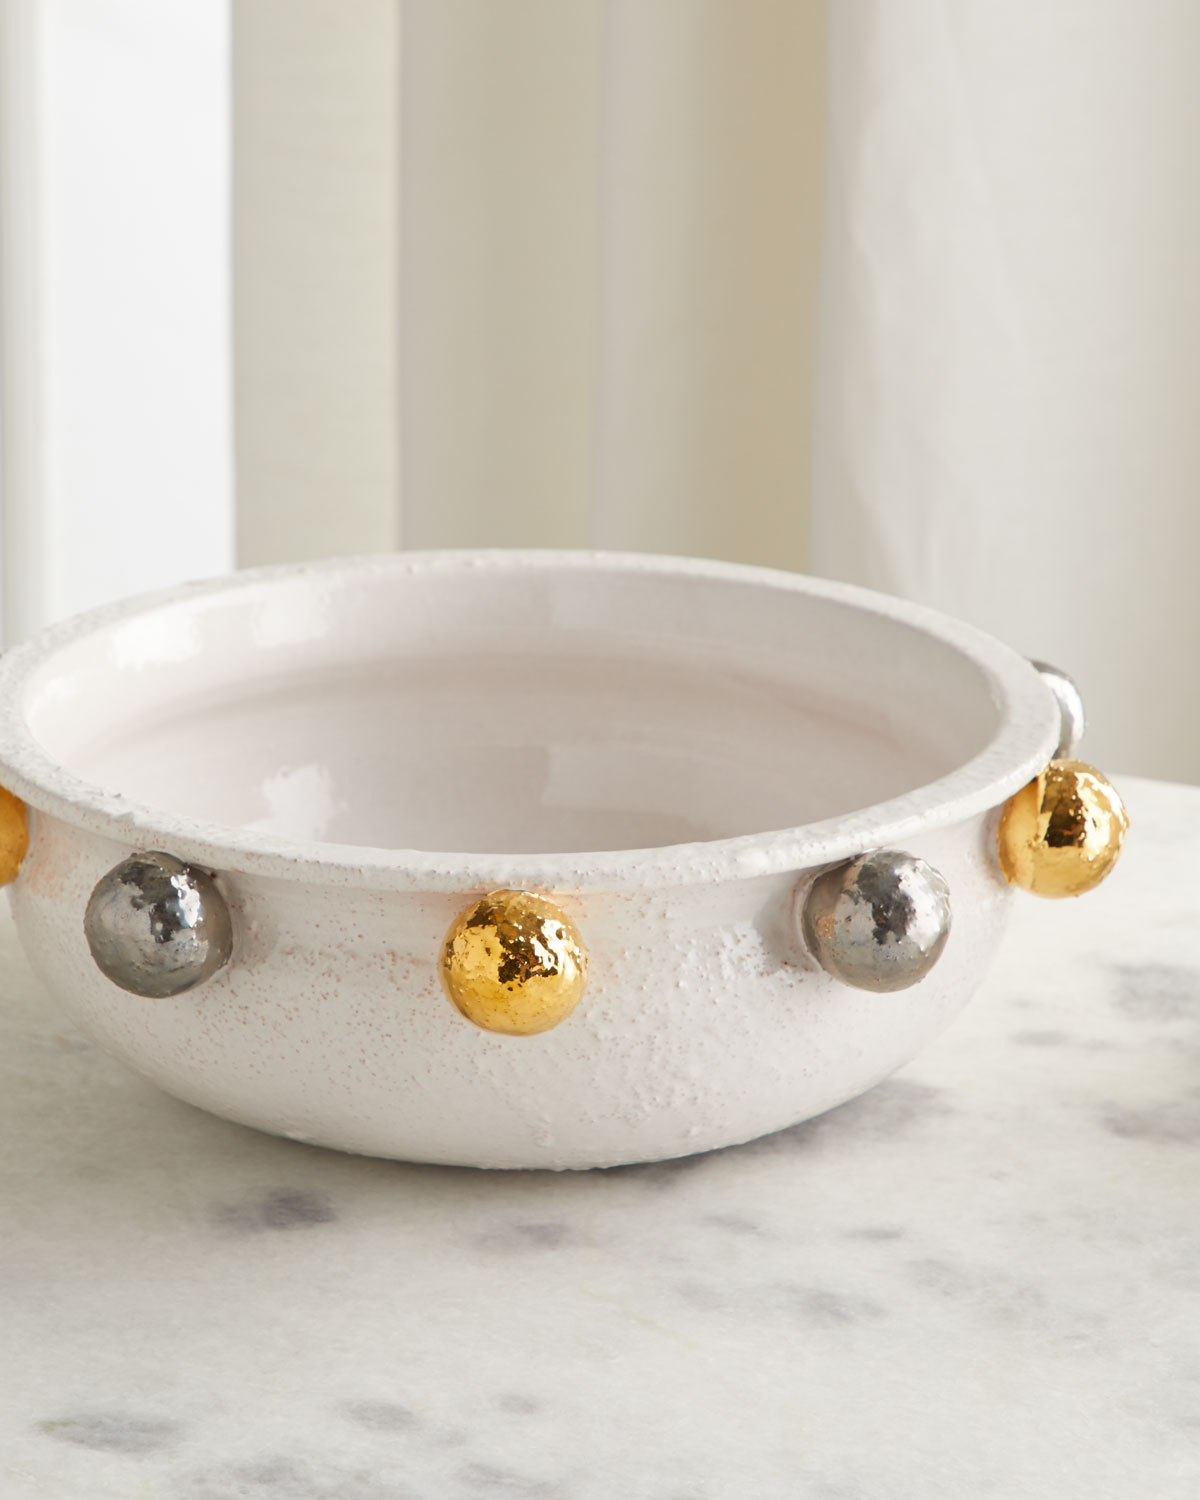 Dolfi Centerpiece with Golden & Silver Spheres